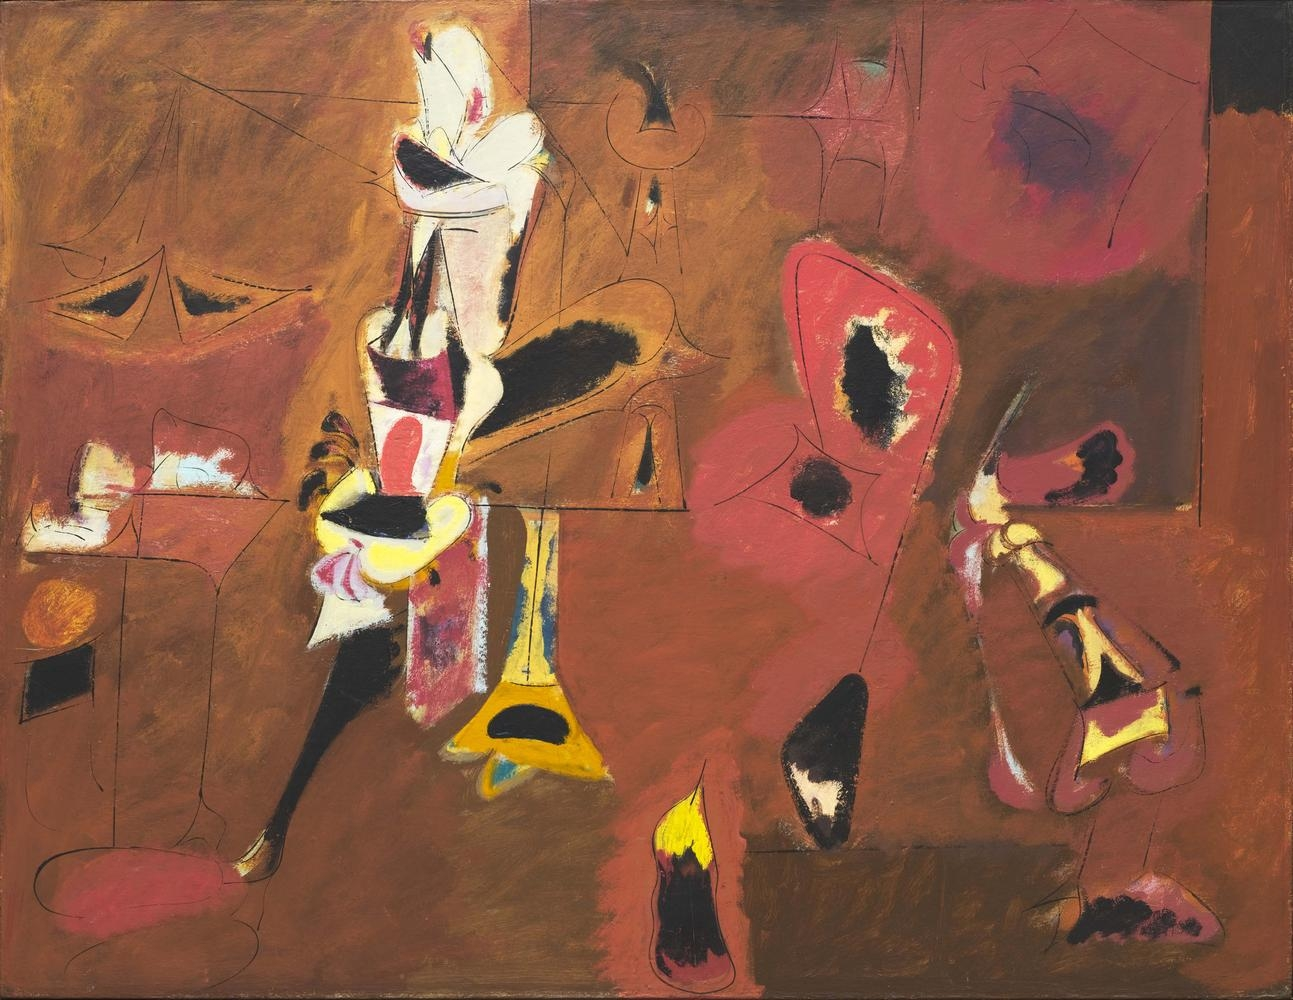 Arshile Gorky Agony 1947 oil on canvas 40 x 50 1/2 inches (101.6 x 128.3 cm)  The Museum of Modern Art, New YorkAlexander Calder  Untitled  c. 1952  sheet metal, wire, and paint  58 x 71 inches (147.3 x 180.3 cm)  Calder Foundation, New York